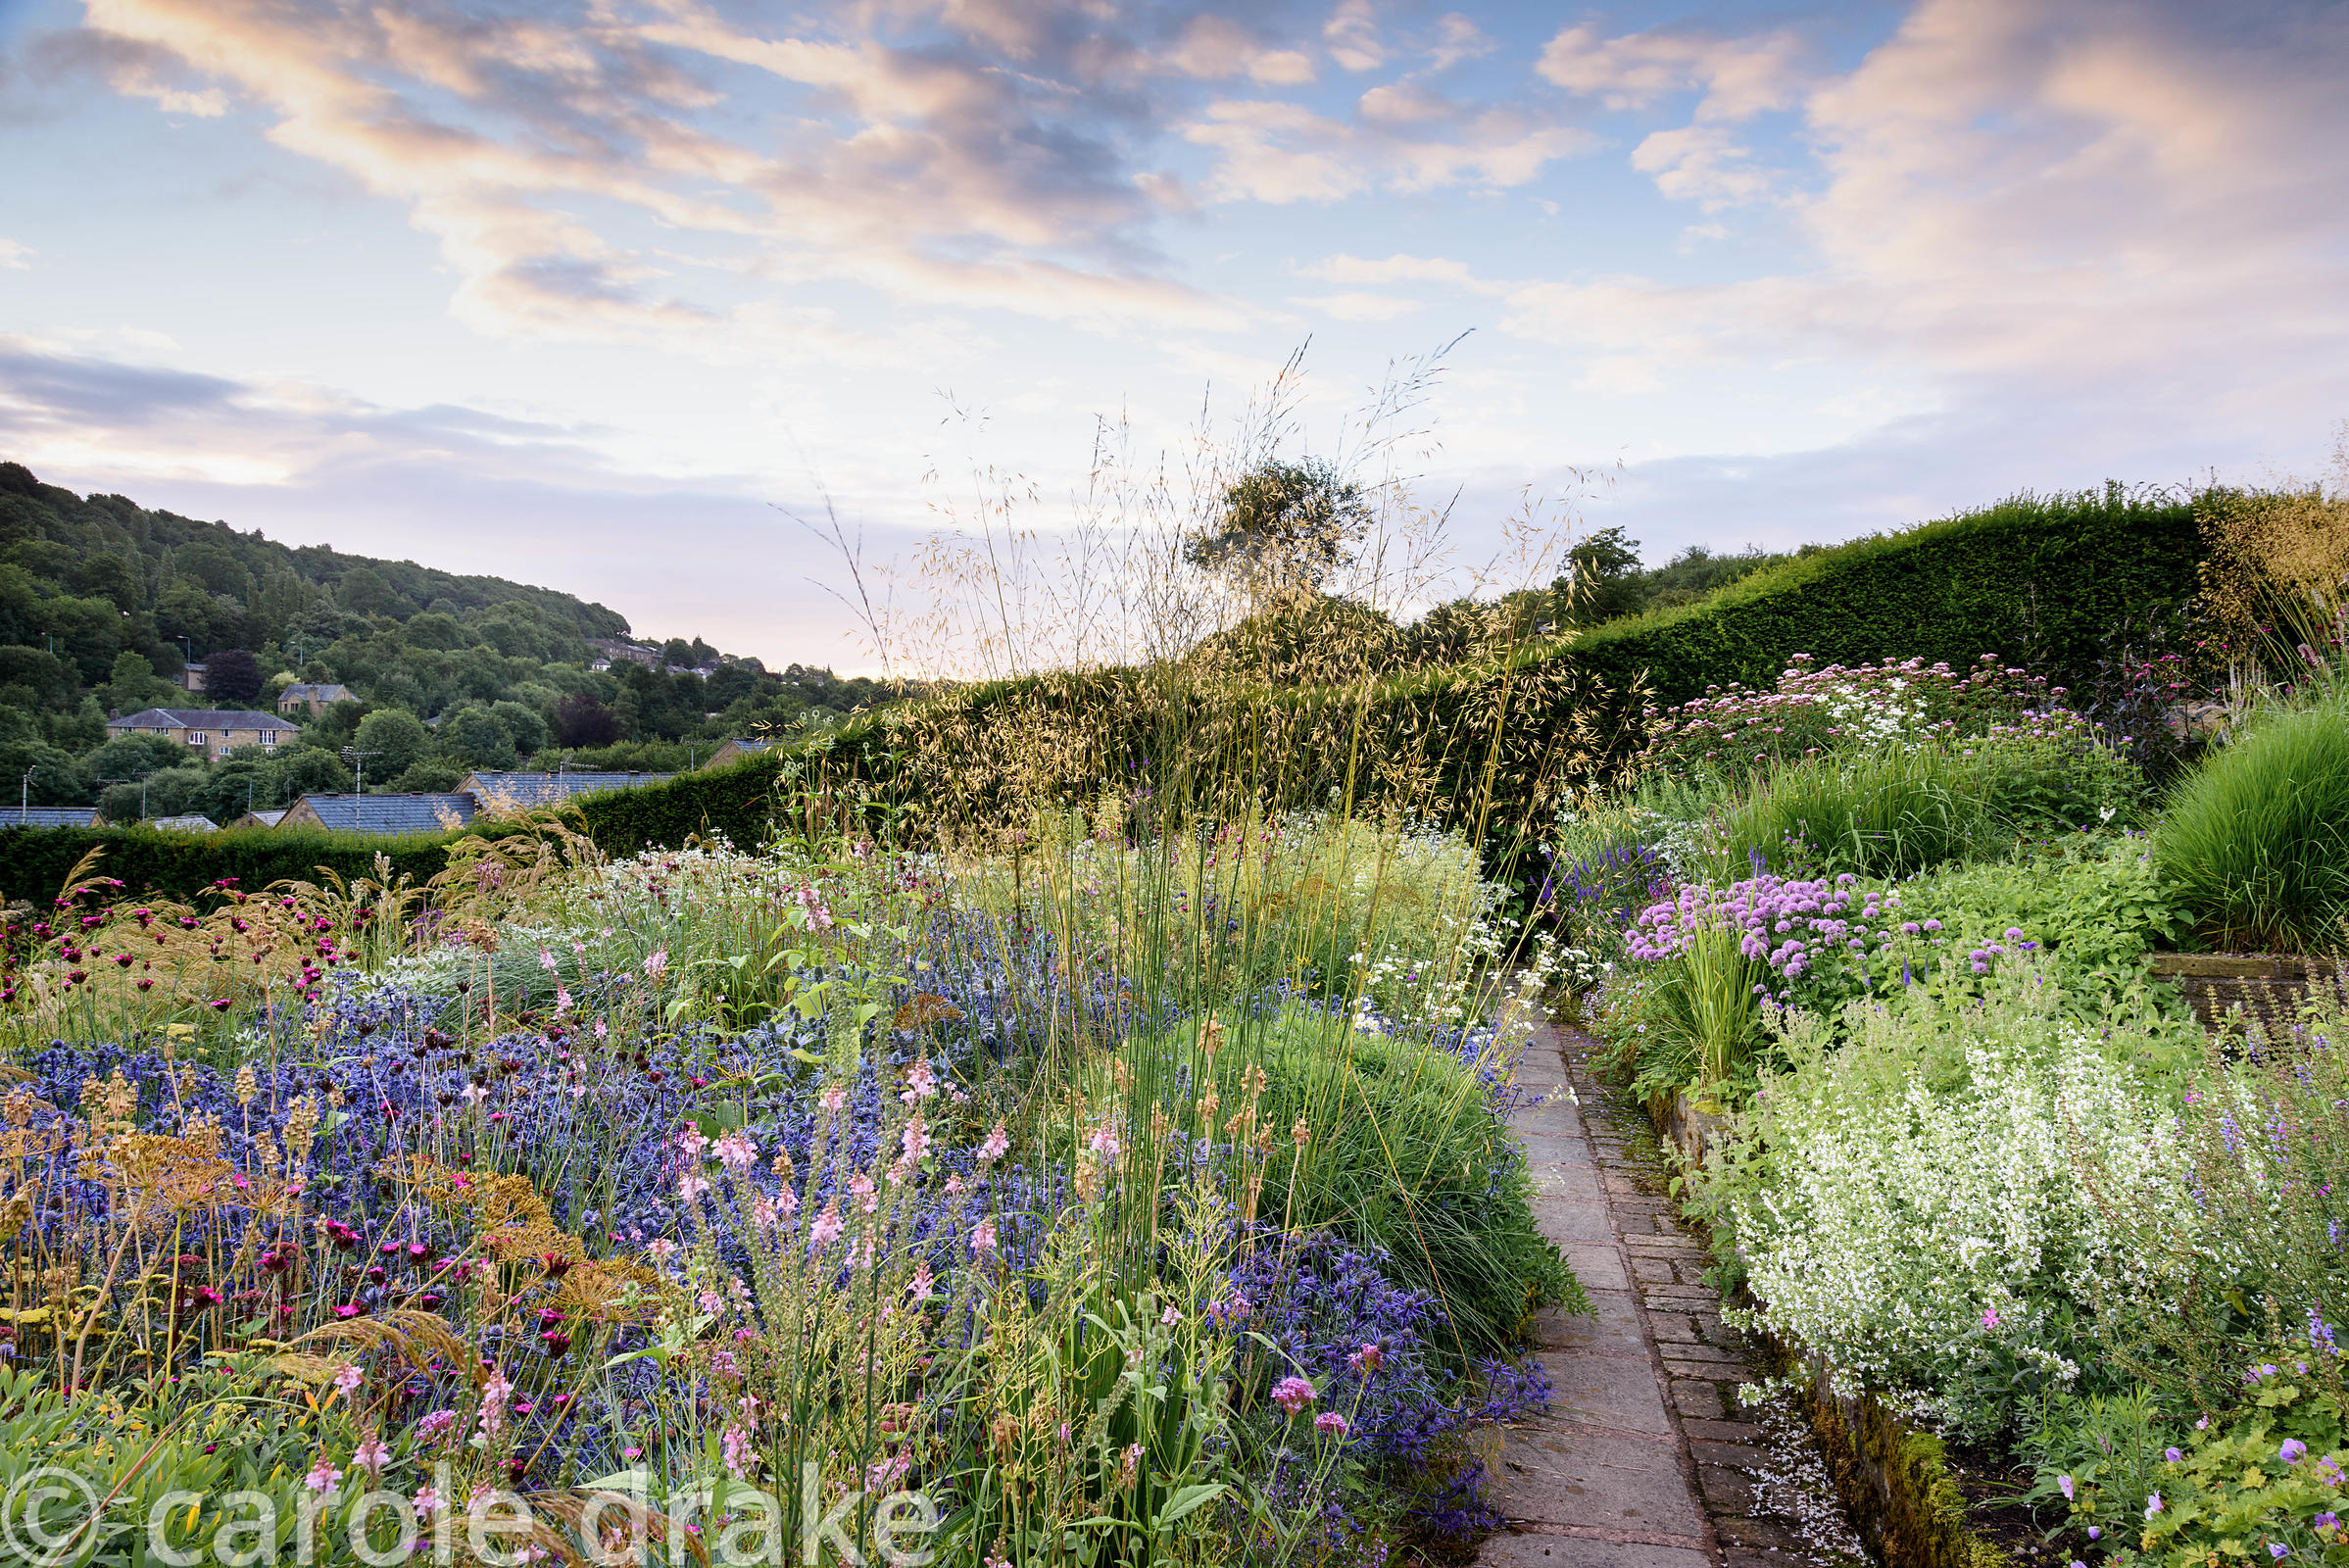 A path between beautifully planted borders featuring grasses such as Stipa calamagrostis, Stipa gigantea and panicum, and her...